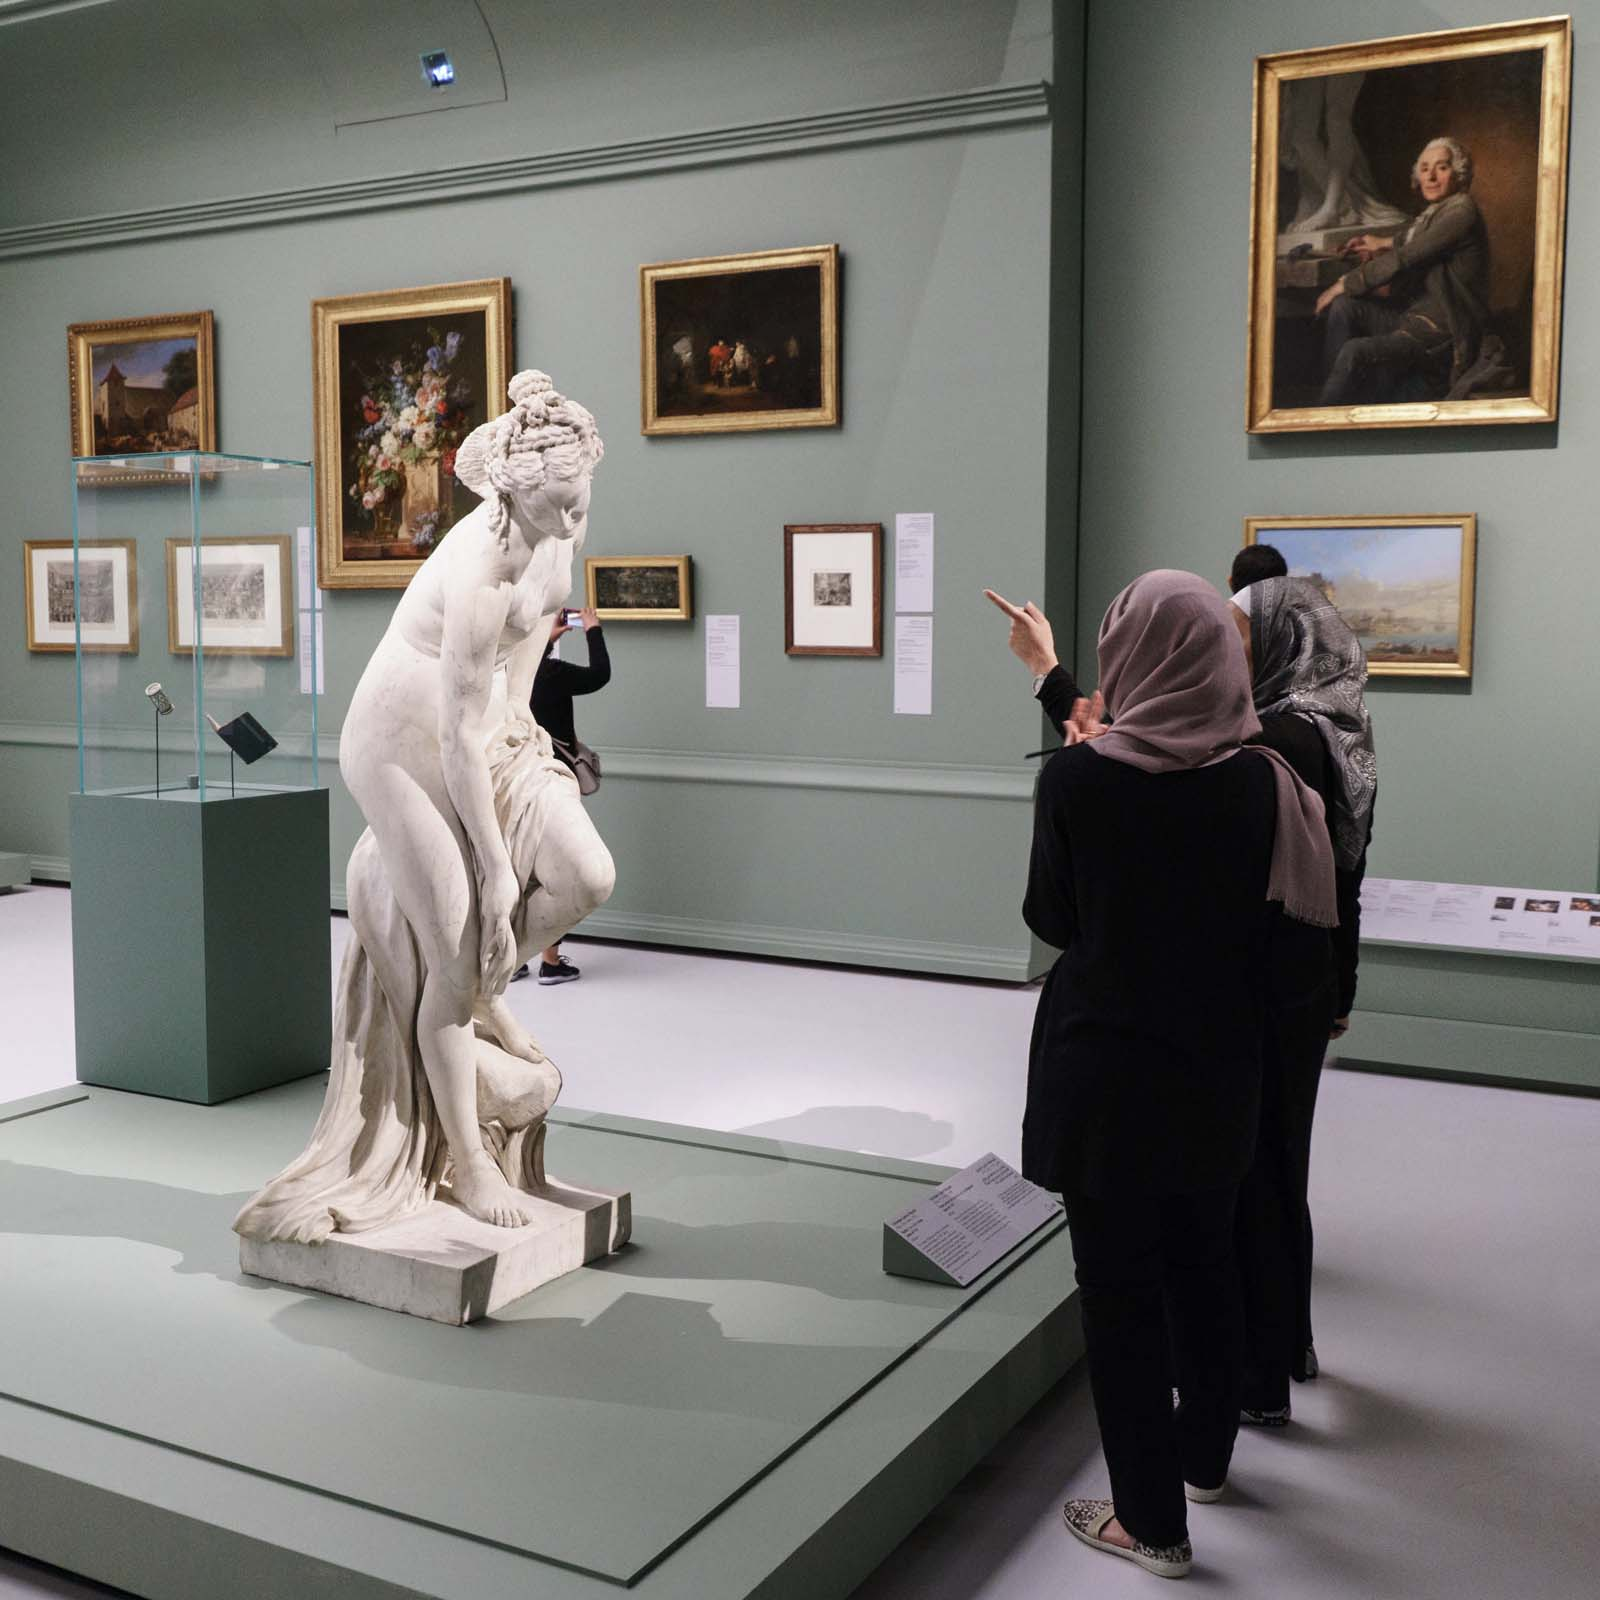 Training in the exhibitions of Louvre Abu Dhabi, learning, French Expertise, France Muséums